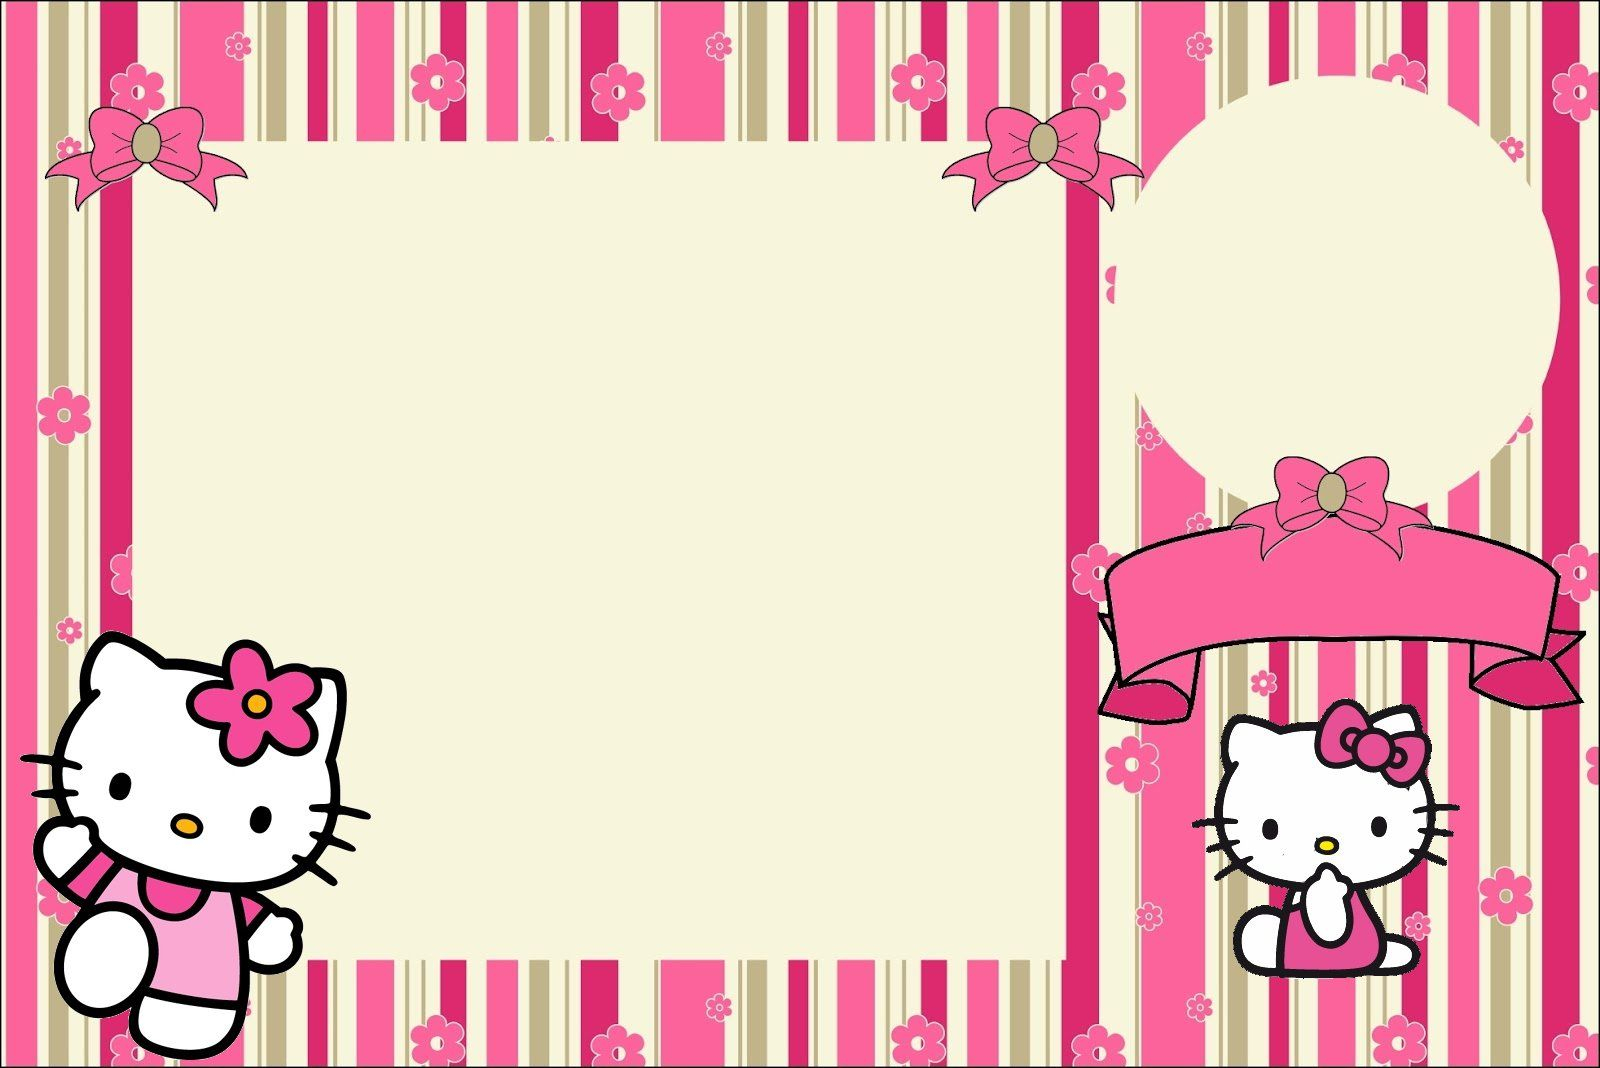 Hello Kitty With Flowers: Free Printable Invitations. | Hello Kitty - Hello Kitty Birthday Card Printable Free